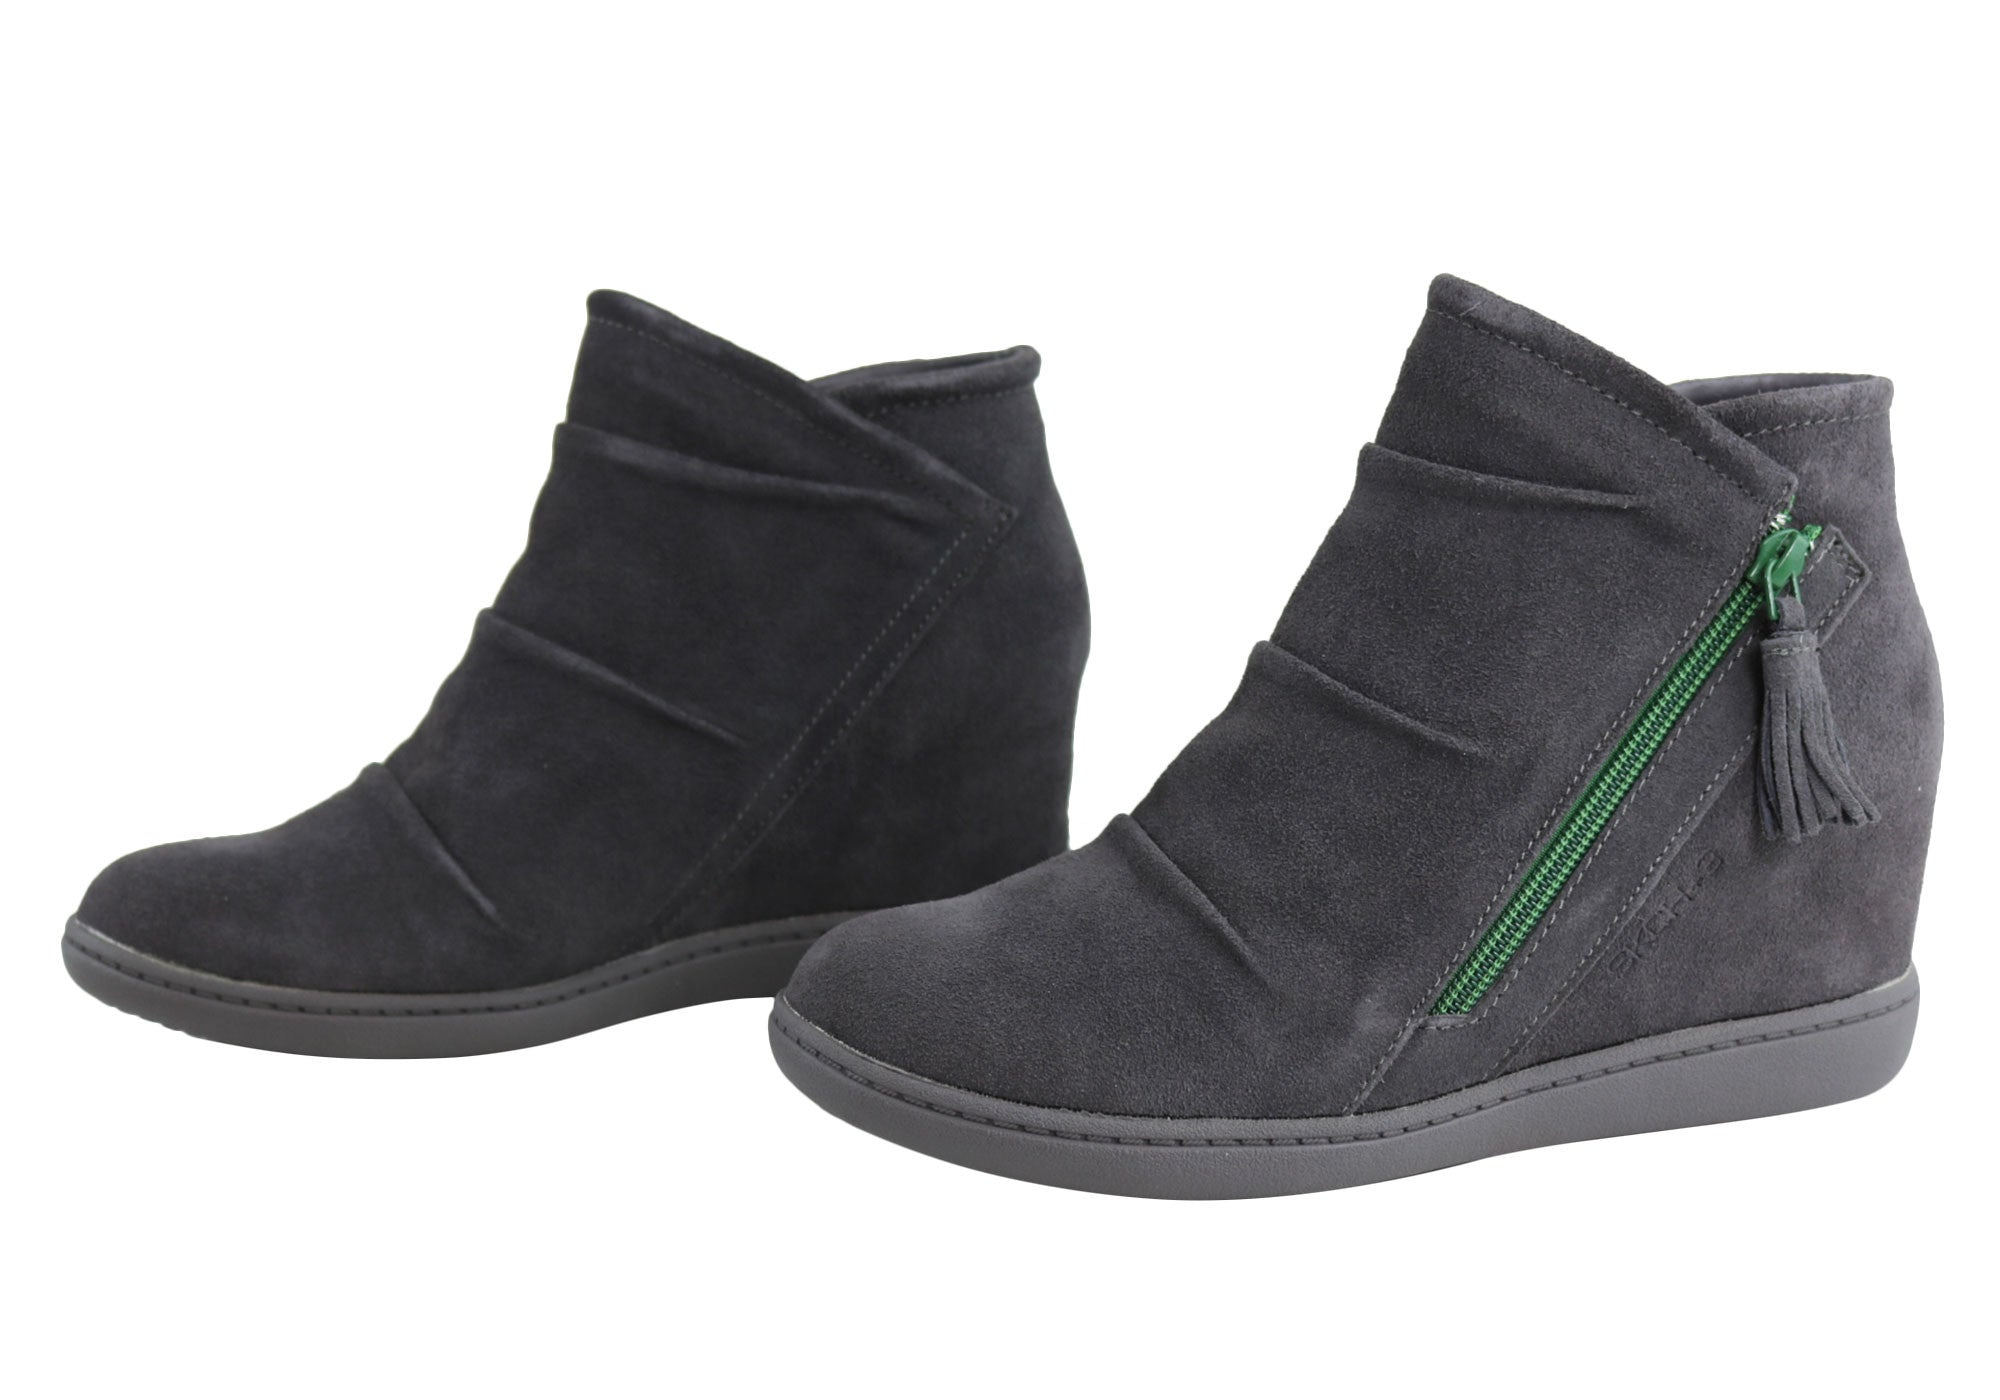 skechers plus 3 ankle boots